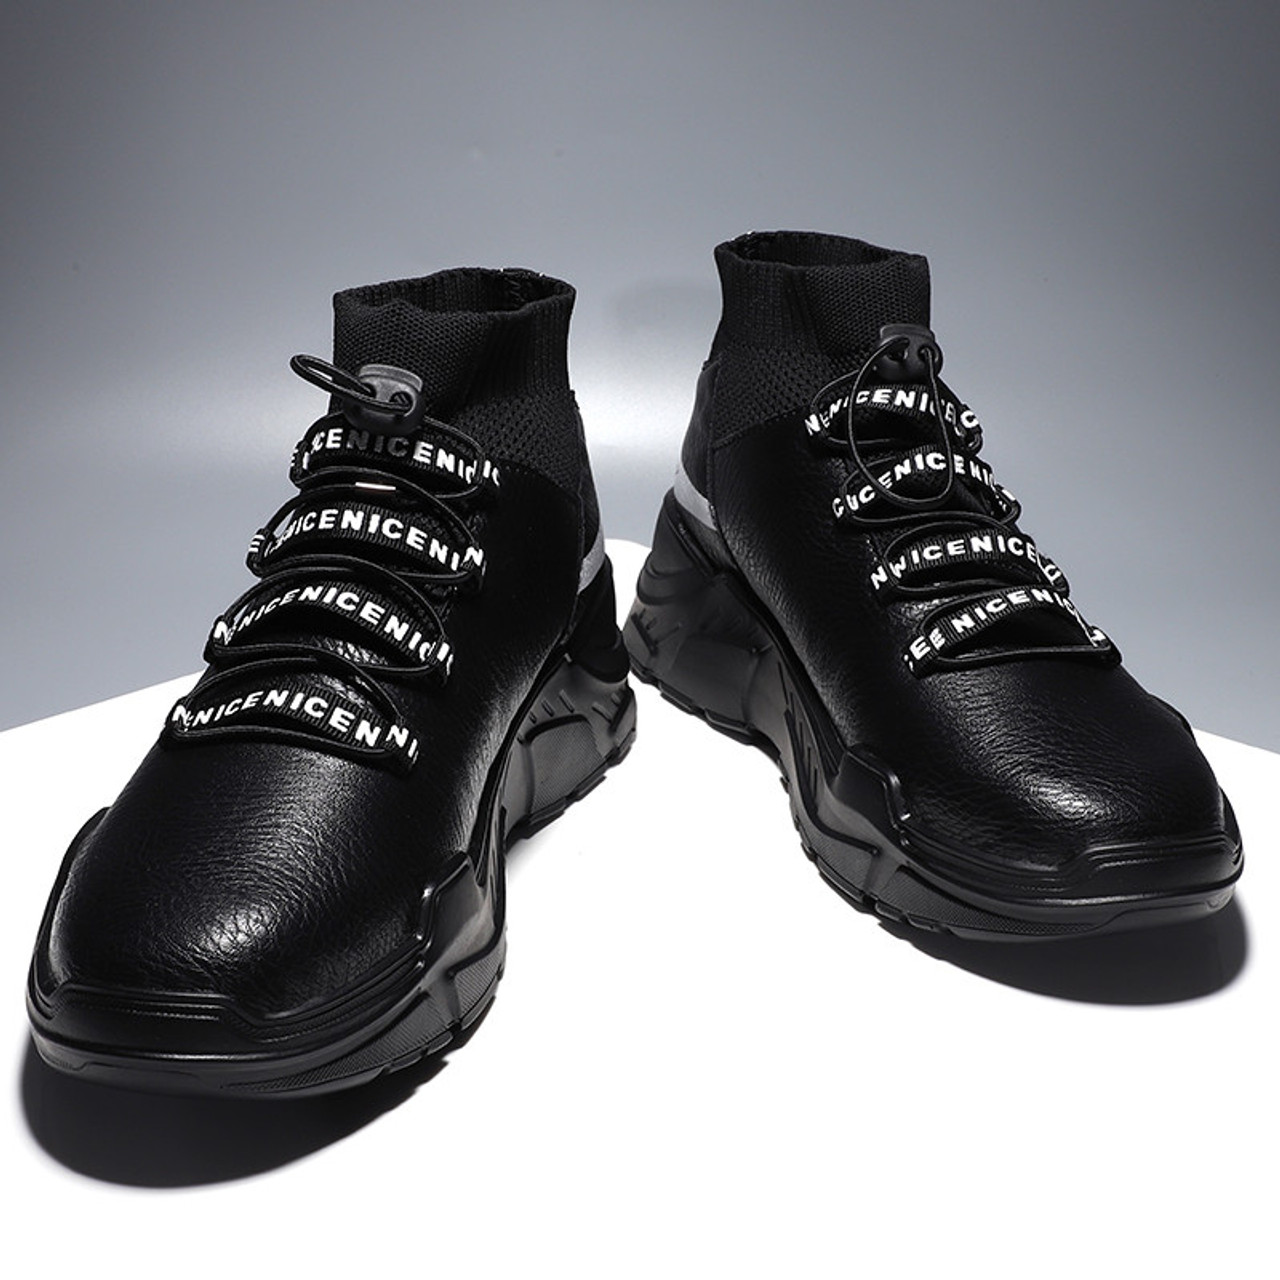 designer fashion the sale of shoes buy best Hot Sale Autumn Winter Sneakers Breathable Fashion Shoes Men Casual Light  Mens Luxury Brand Designer Leather Black Male Shoes